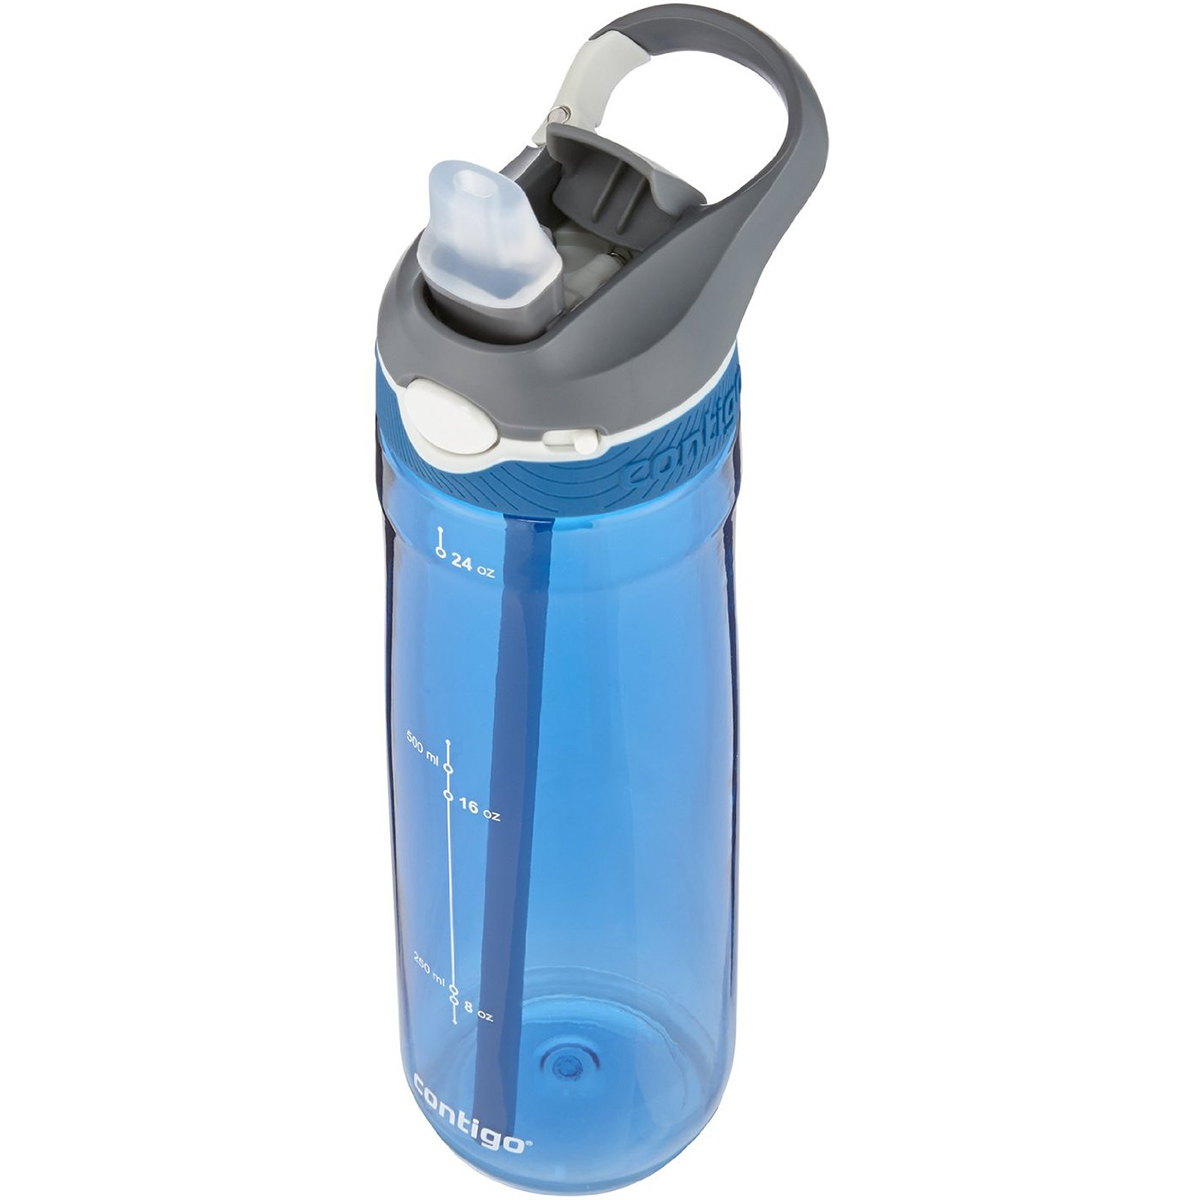 Contigo-24-oz-Ashland-Autospout-Water-Bottle miniature 16